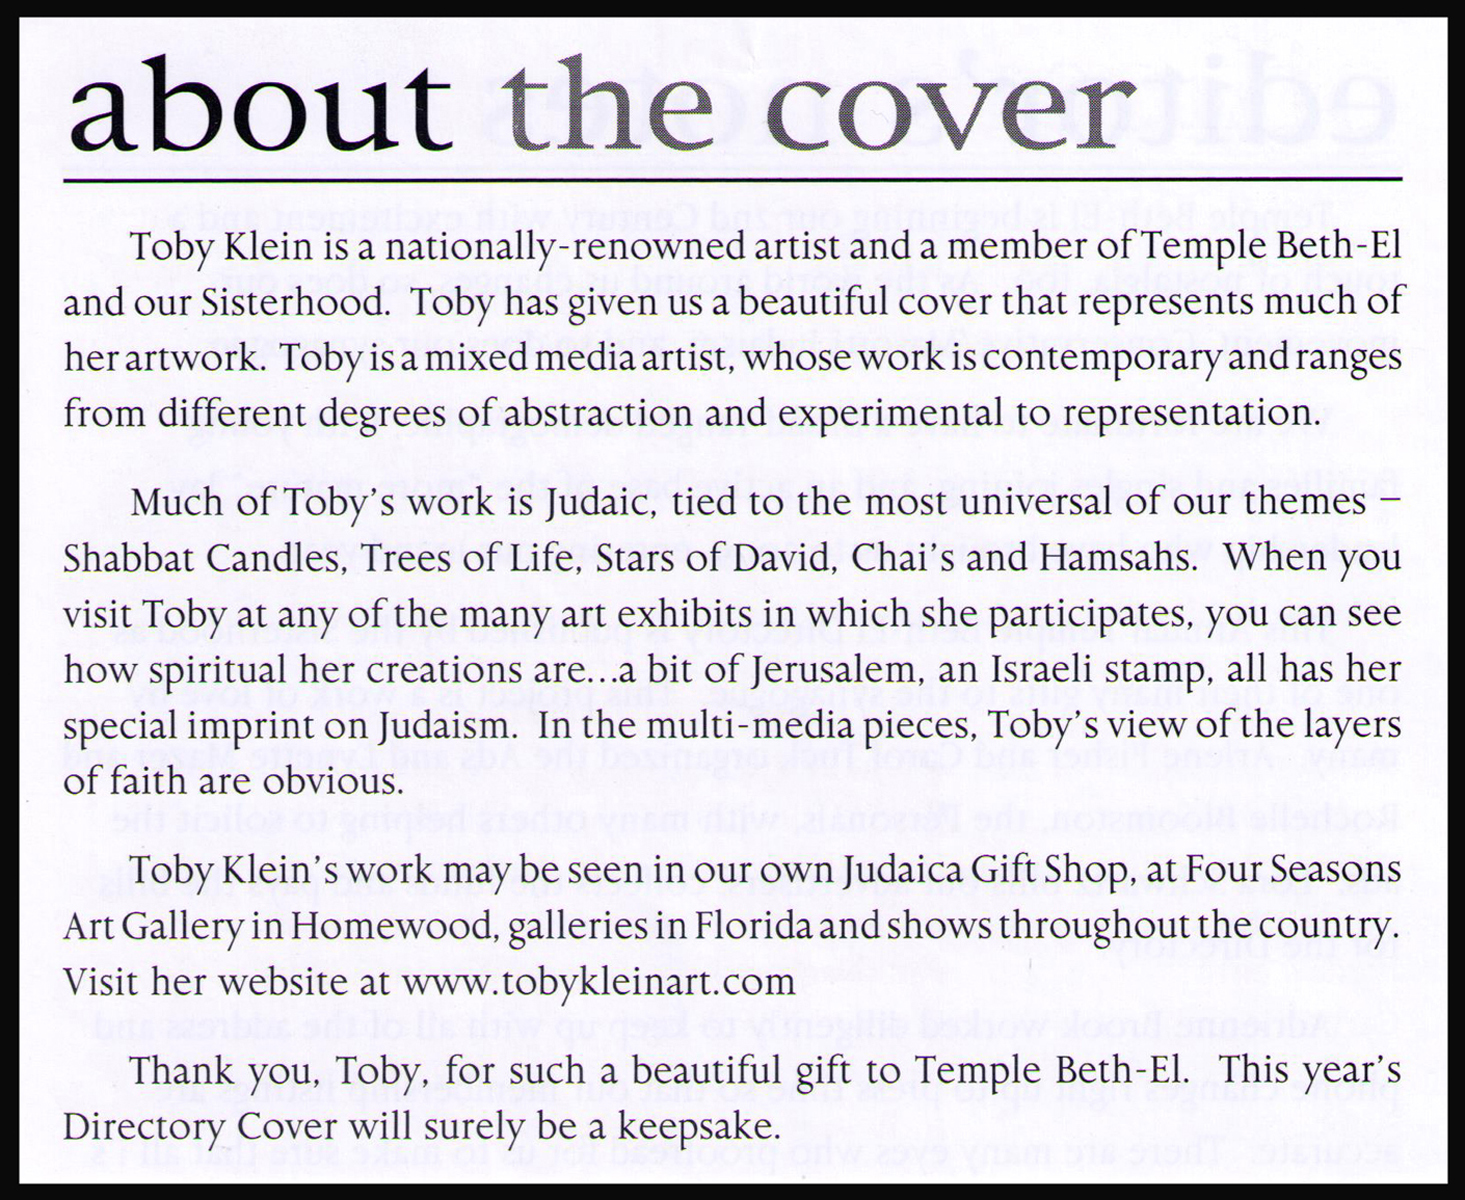 Temple Beth-El Directory 2009 About the Cover